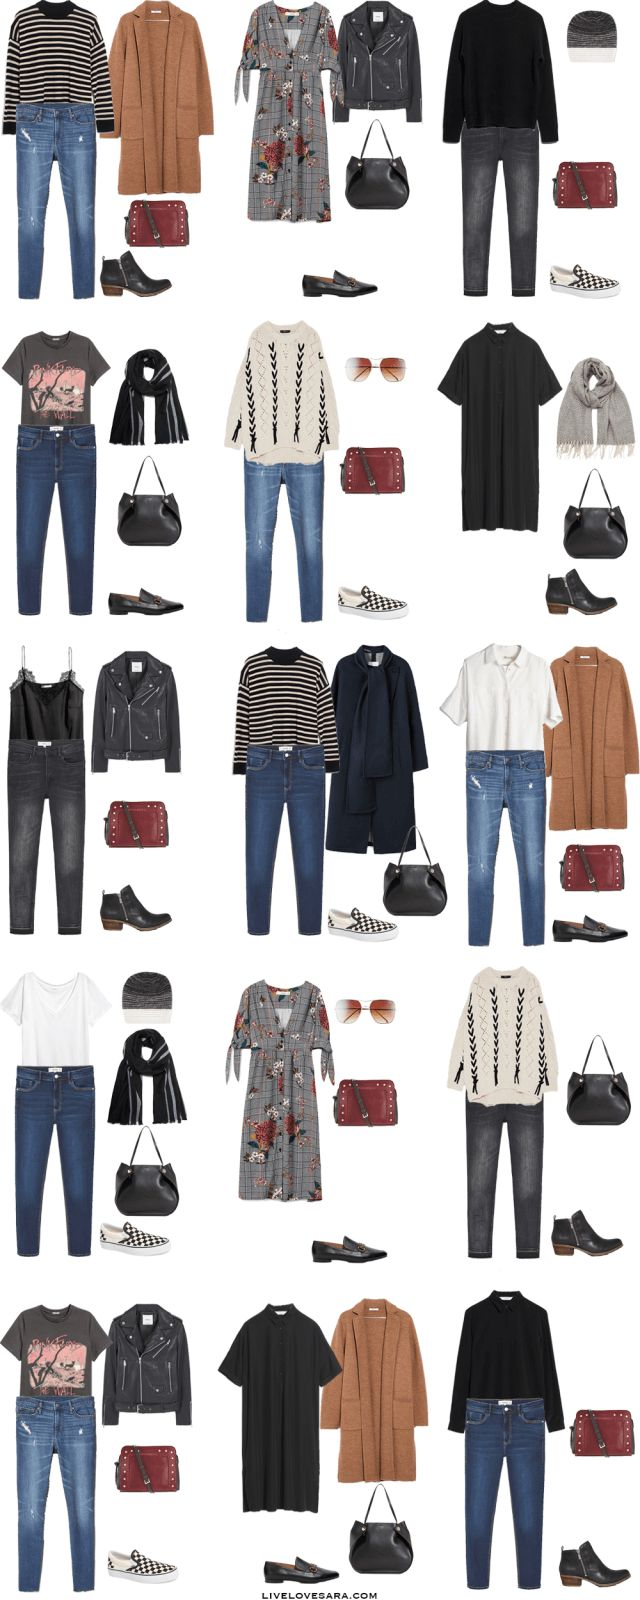 What to Pack for Edinburgh, Scotland Packing Light List Outfit Options 1-15